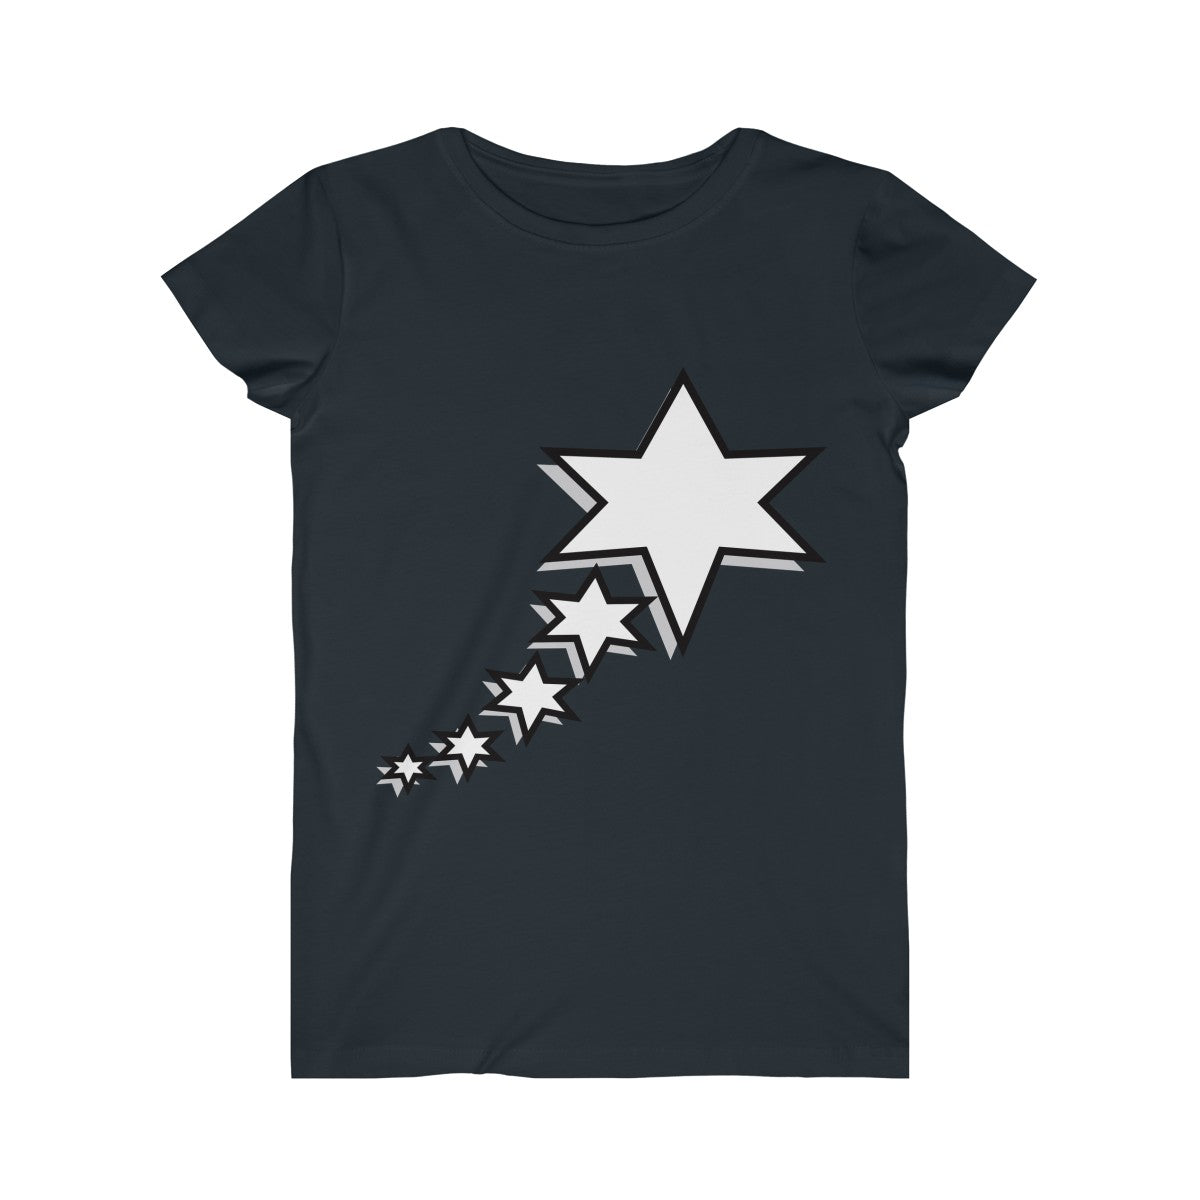 Women's Fine Jersey Tee - 6 Points 5 Stars (White)